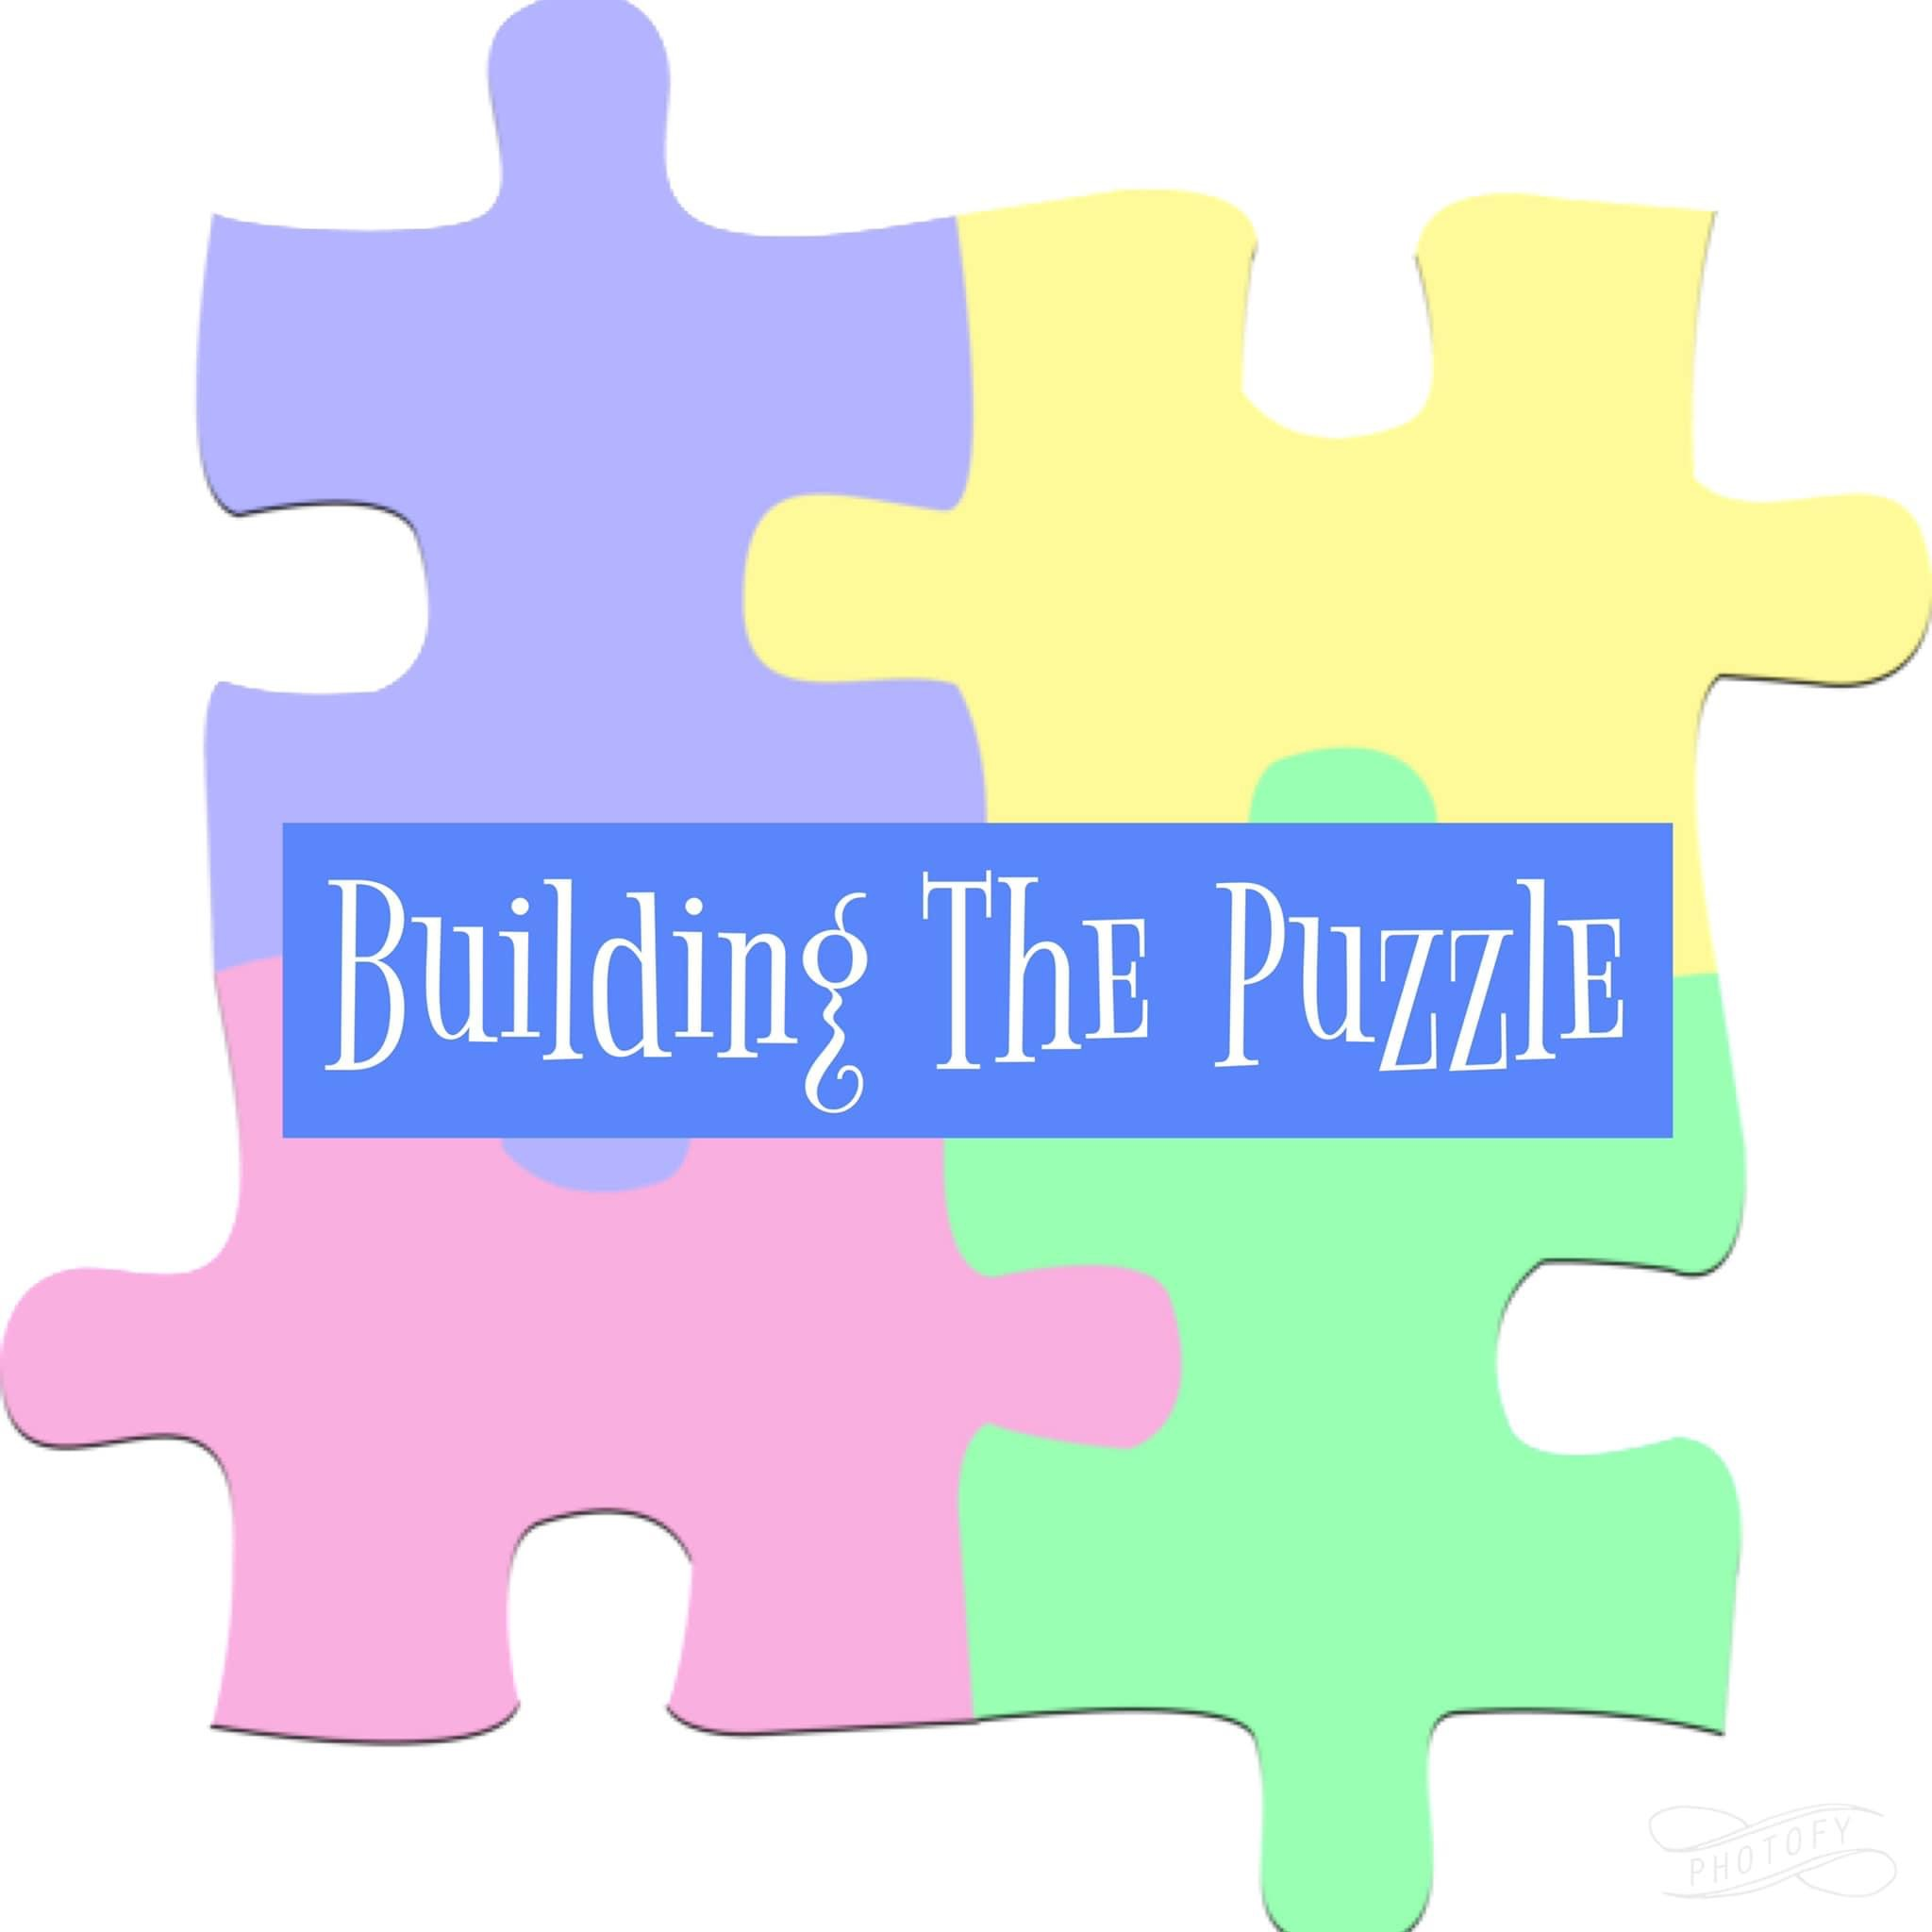 Artwork for podcast Autism Building The Puzzle